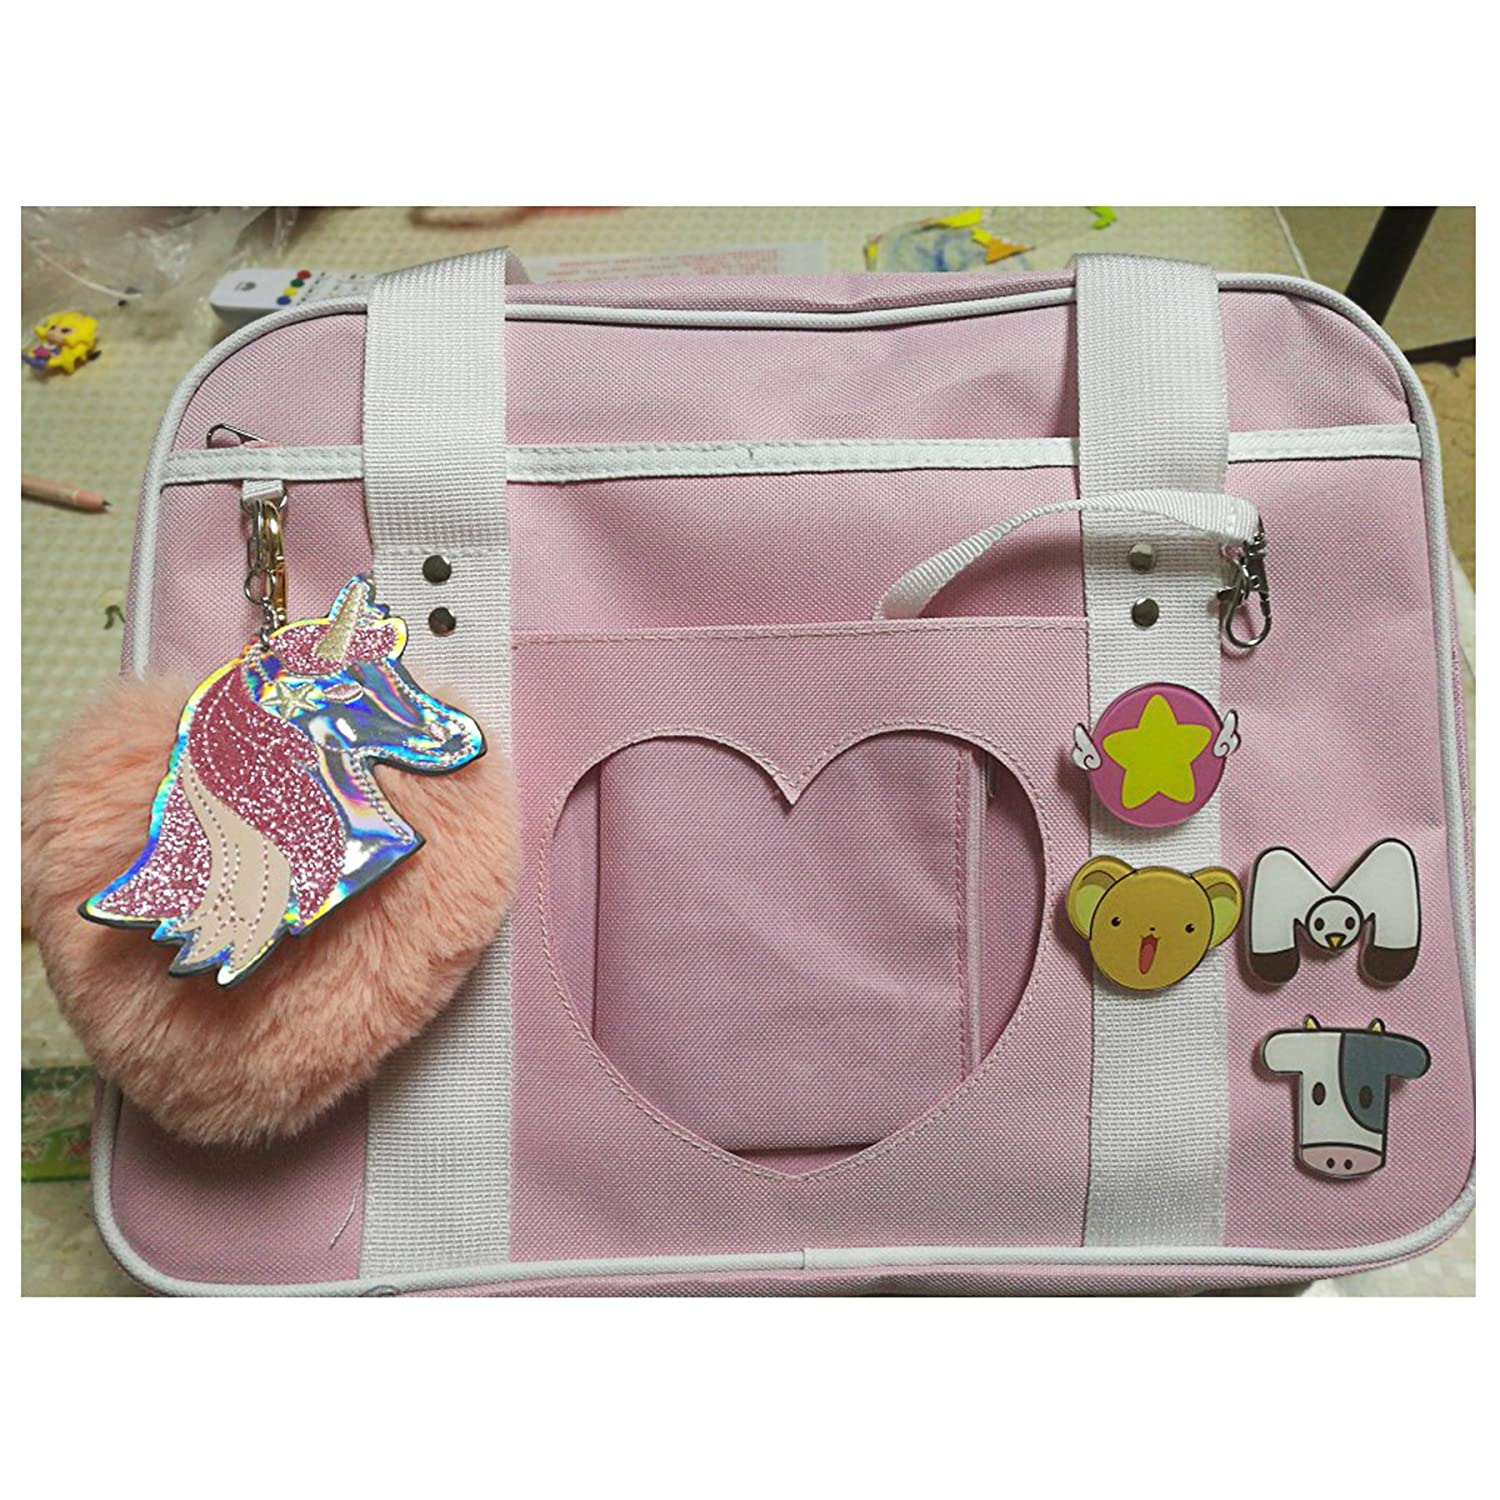 SteamedBun Ita Bag Heart Japanese Bags Kawaii Large Shoulder Anime Purse